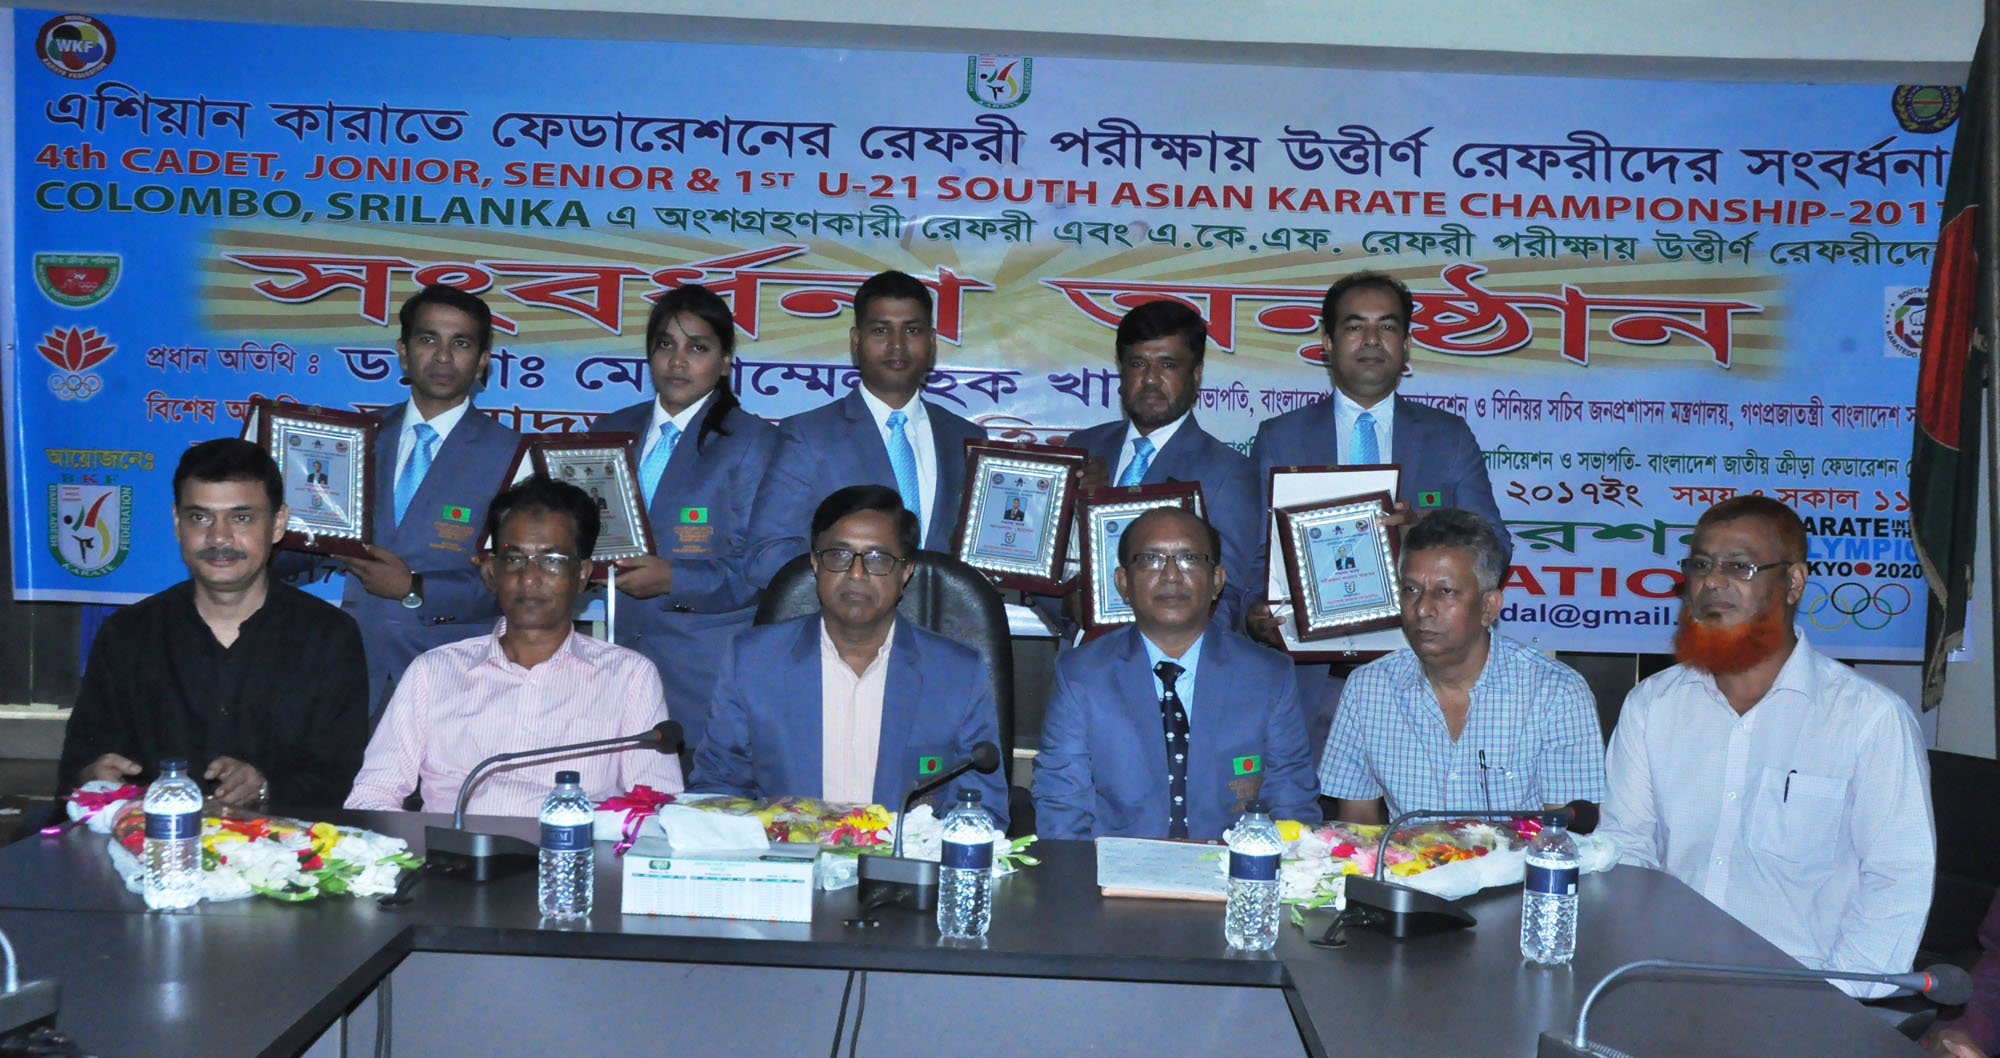 The Bangladesh Karate Federation (BKF) accords a reception to five Bangladeshi referees who successfully passed in the karate referee examination held in the Sri Lankan capital of Colombo last month. The reception programme was held at the conference room of National Sports Council Tower on Thursday.